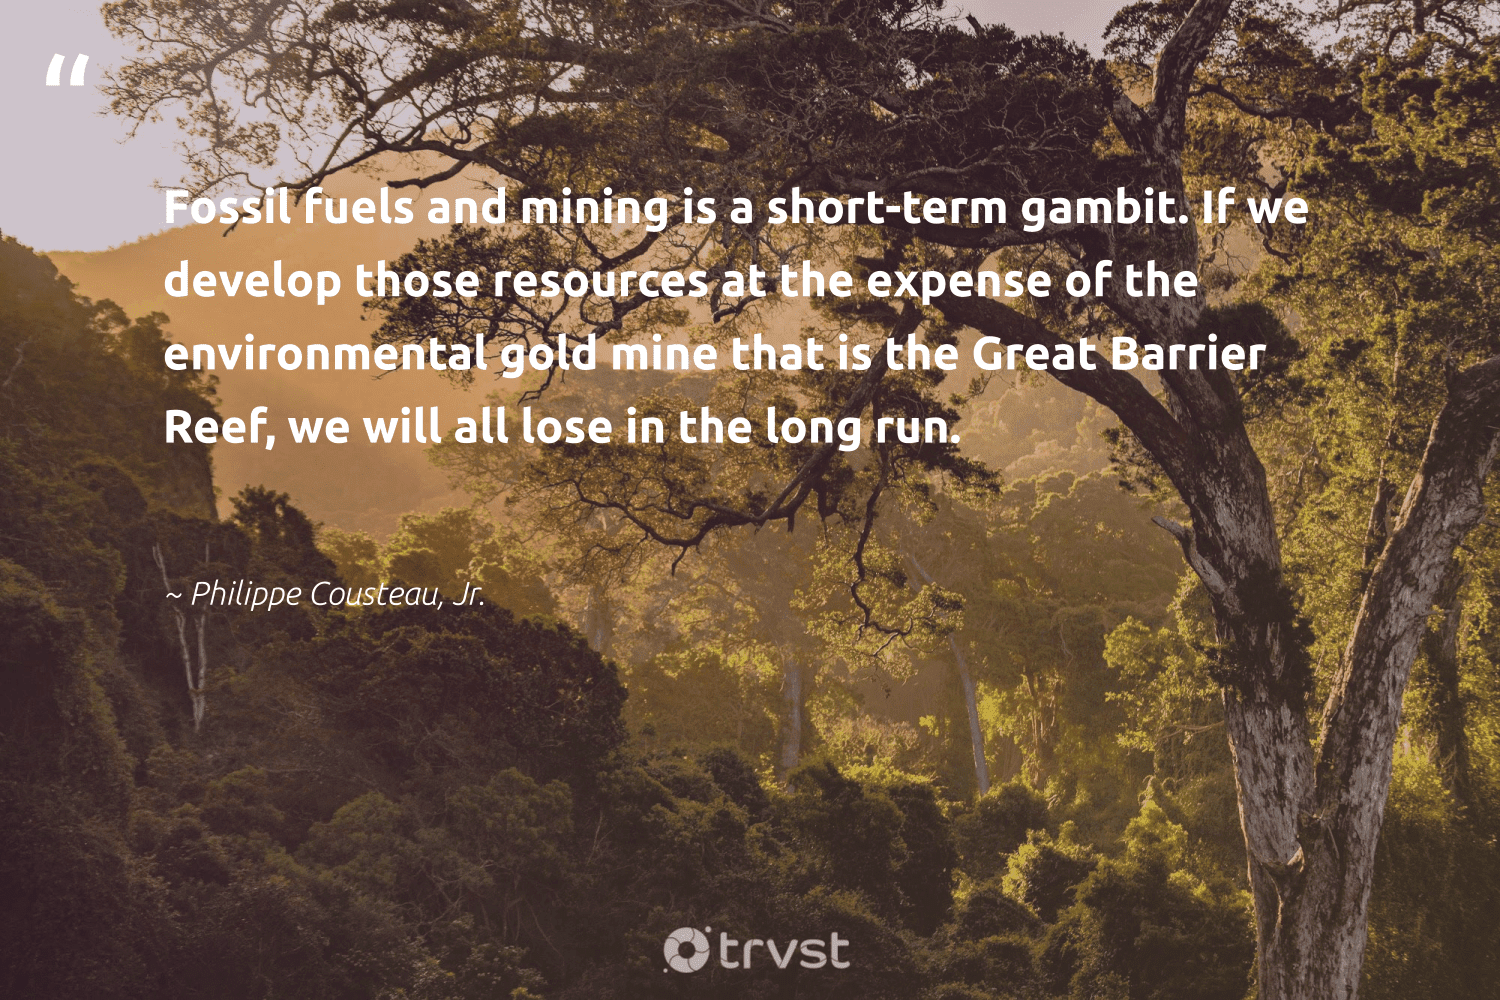 """""""Fossil fuels and mining is a short-term gambit. If we develop those resources at the expense of the environmental gold mine that is the Great Barrier Reef, we will all lose in the long run.""""  - Philippe Cousteau, Jr. #trvst #quotes #environmental #fossilfuels #fossil #oilslick #naturelovers #sustainable #gogreen #coal #wildlifeplanet #carbonfree"""